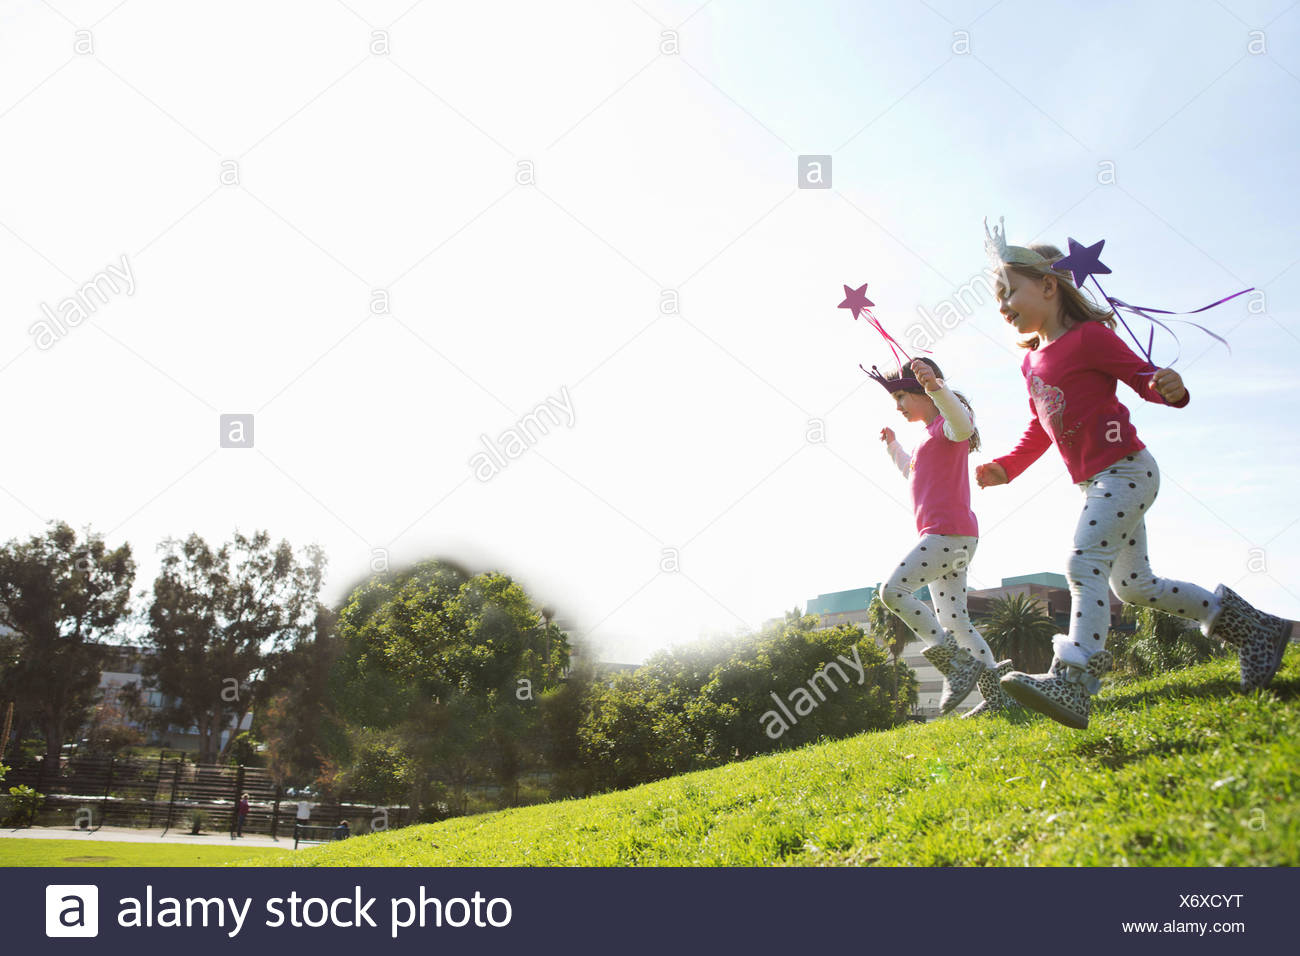 Two young sisters dressed up as fairies running down hill - Stock Image